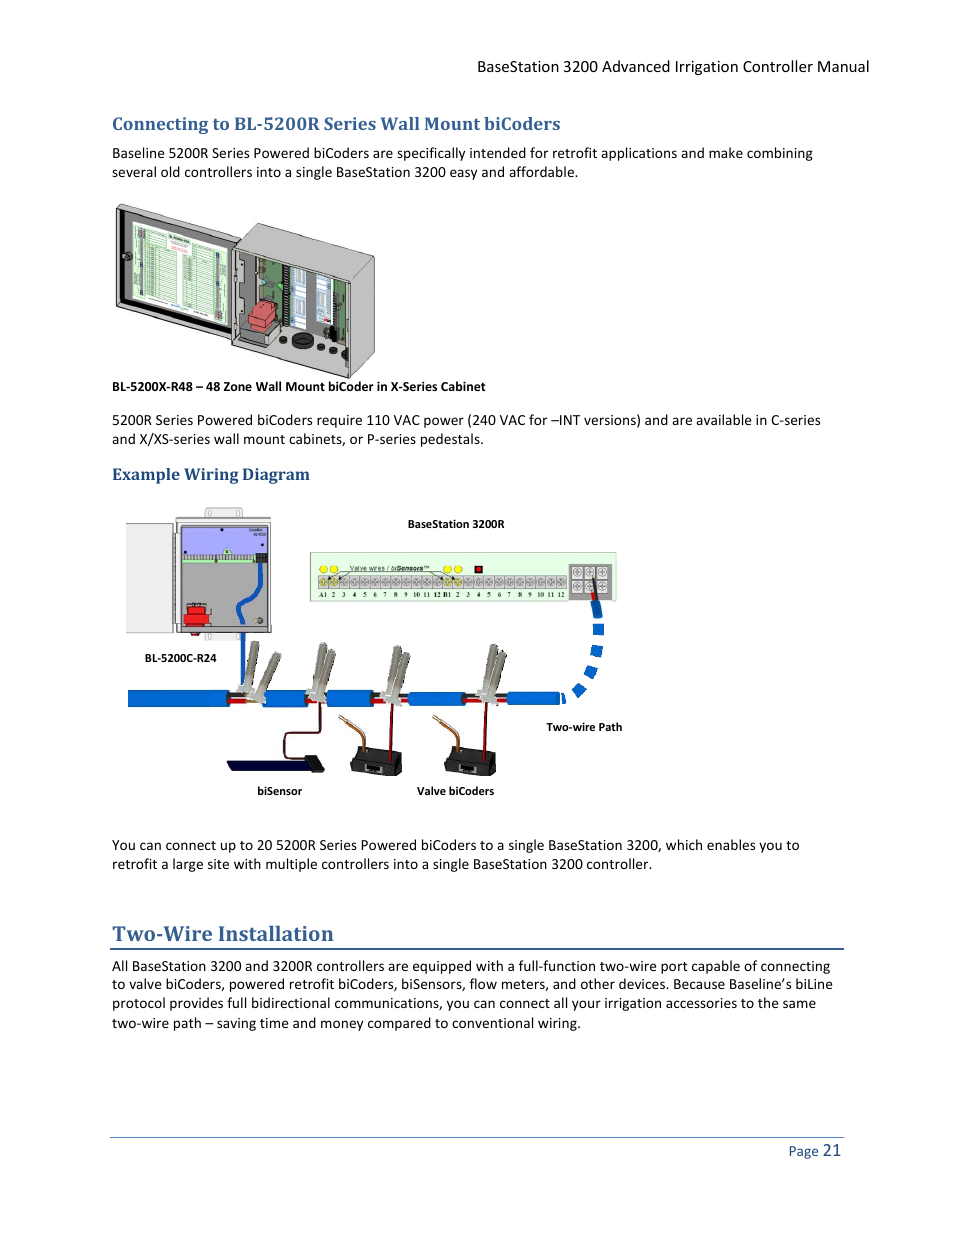 Irrigation Flow Sensor Wiring Path Schematic Diagrams Meter Diagram Connecting To Bl 5200r Series Wall Mount Bicoders Example Industrial